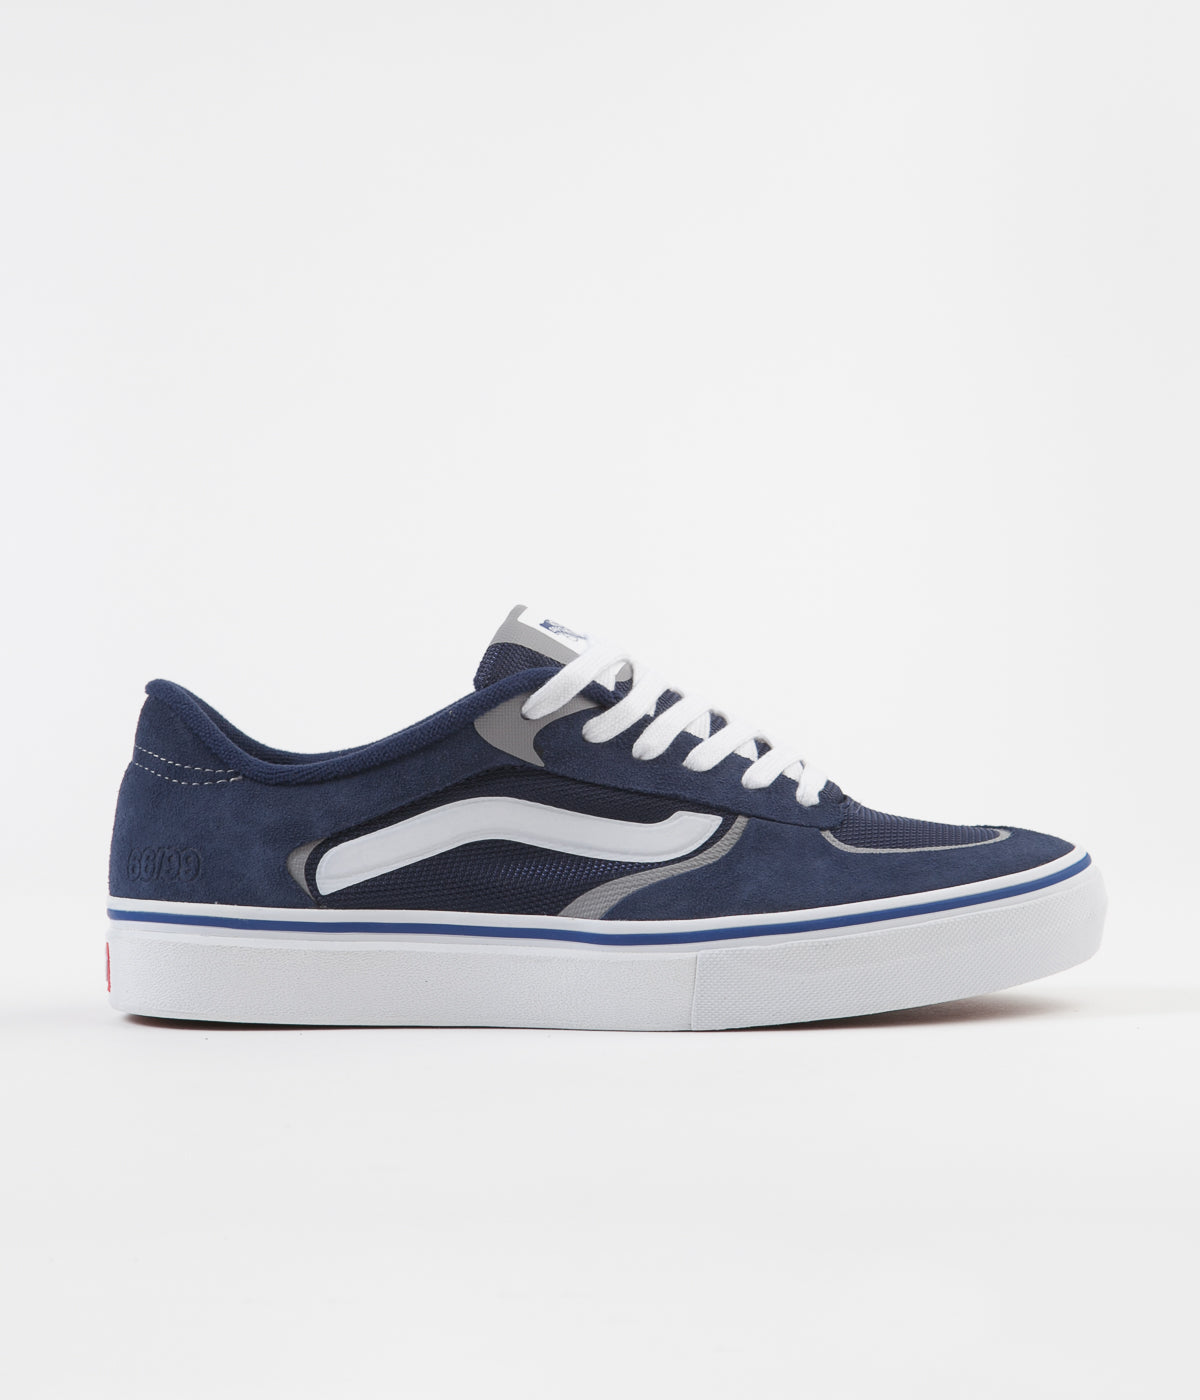 Vans Rowley Rapidweld Pro Shoes - Navy / White